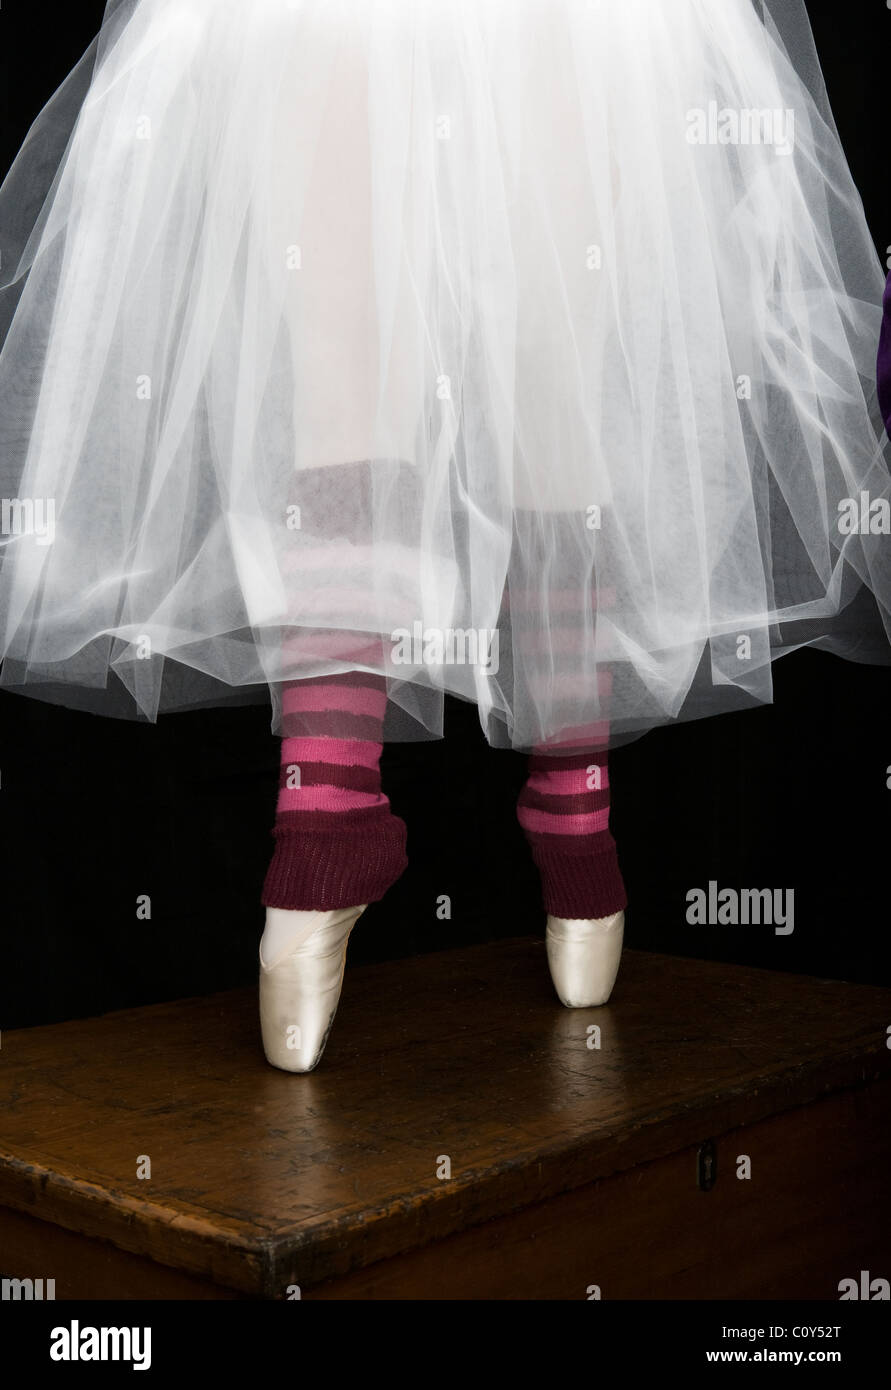 Detail portrait of a teenage ballerina wearing a white tutu and point shoes as she standing on her toes on top of - Stock Image